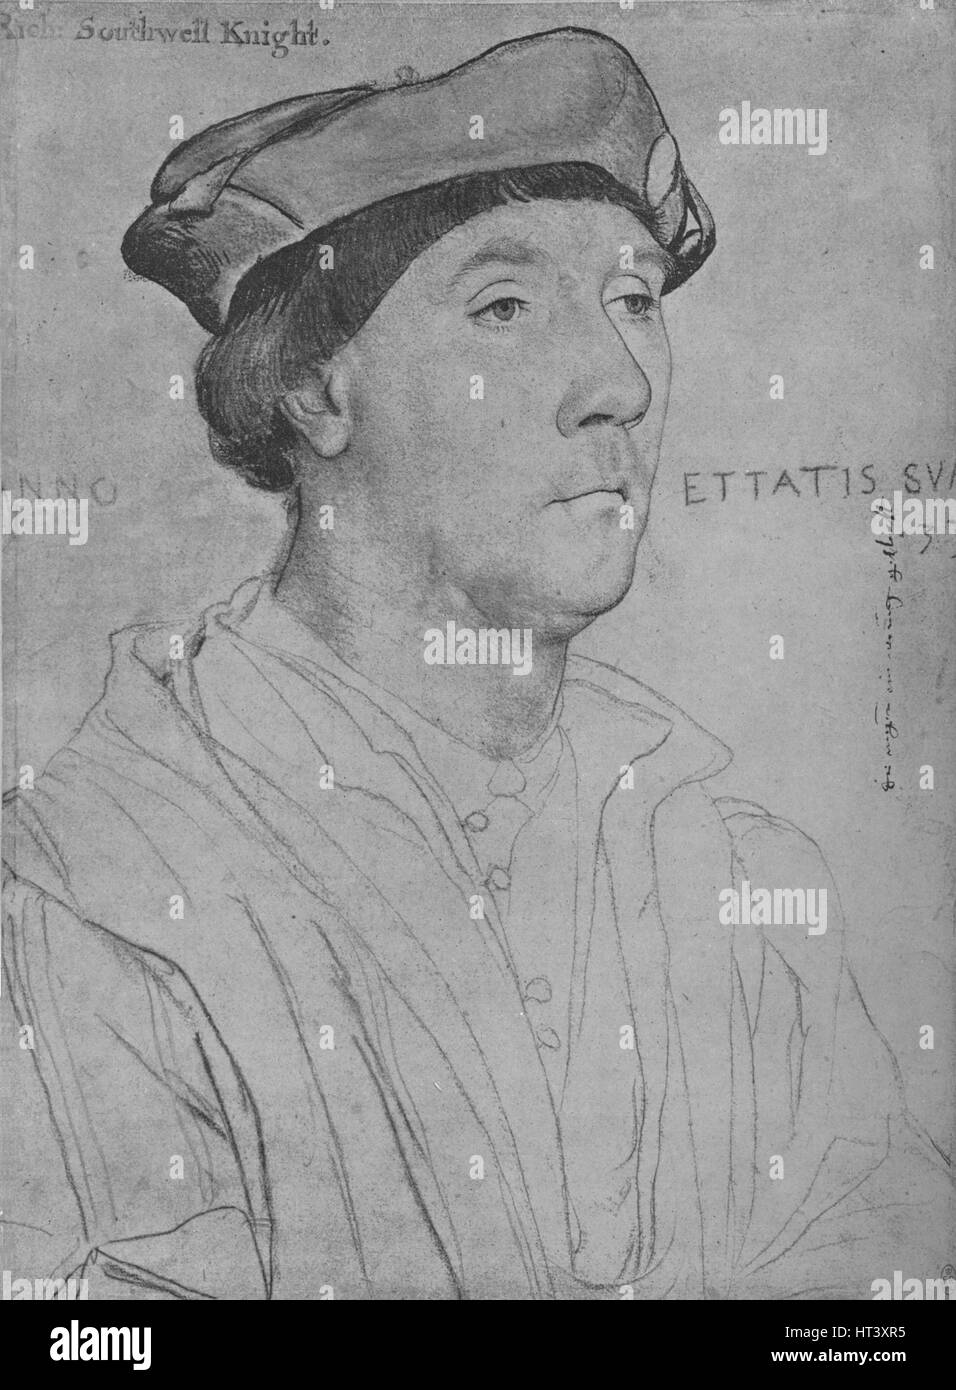 'Sir Richard Southwell', 1536 (1945). Artist: Hans Holbein the Younger. - Stock Image